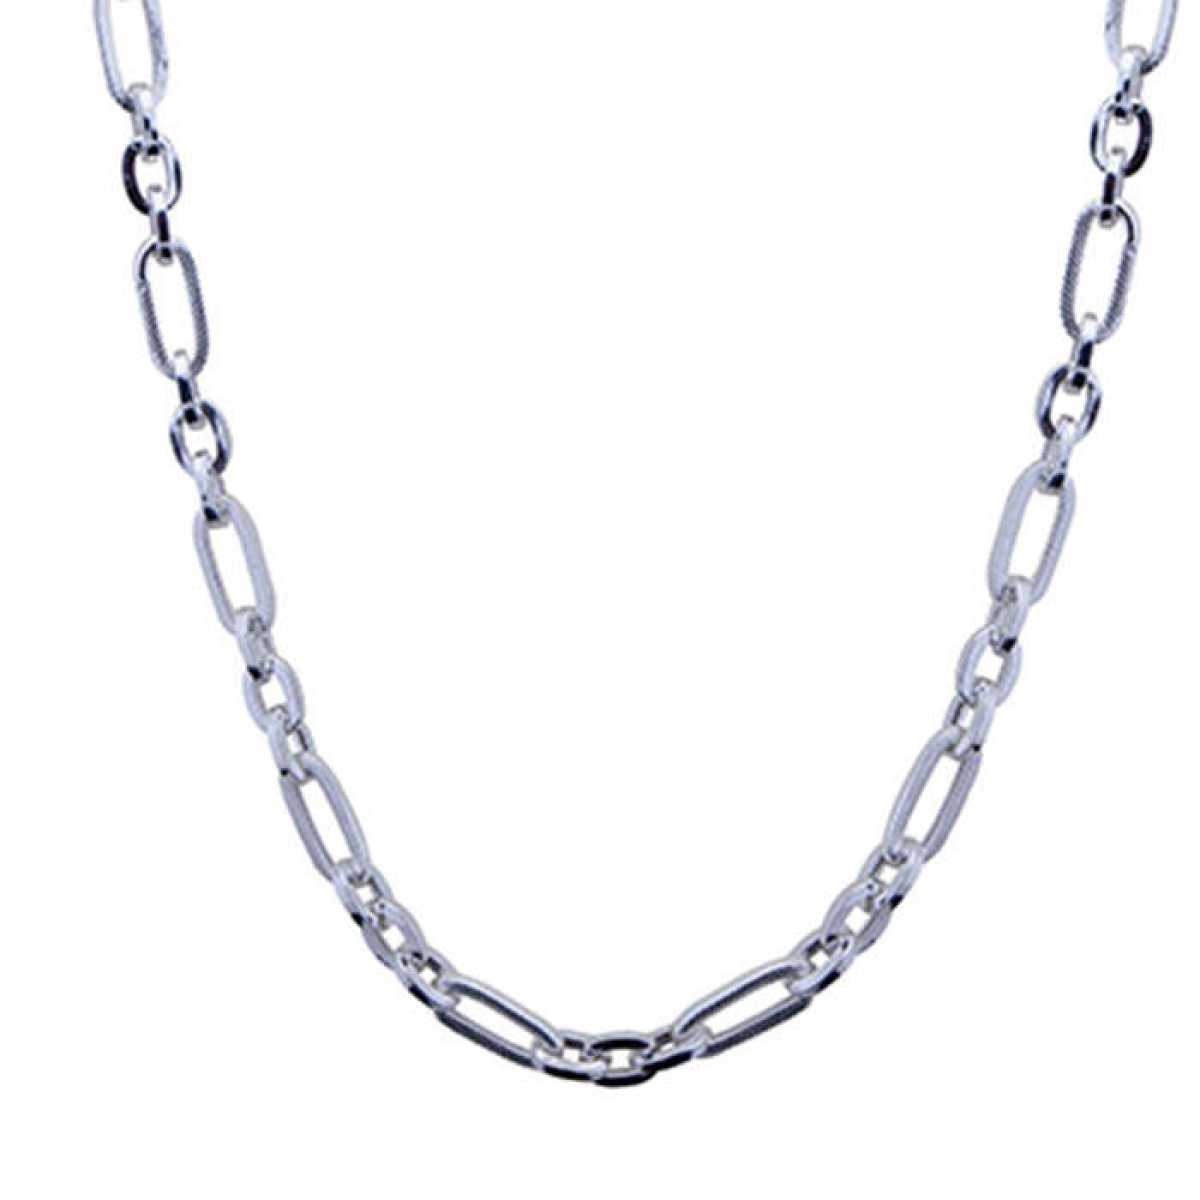 Heavy Look Silver Chain for Men